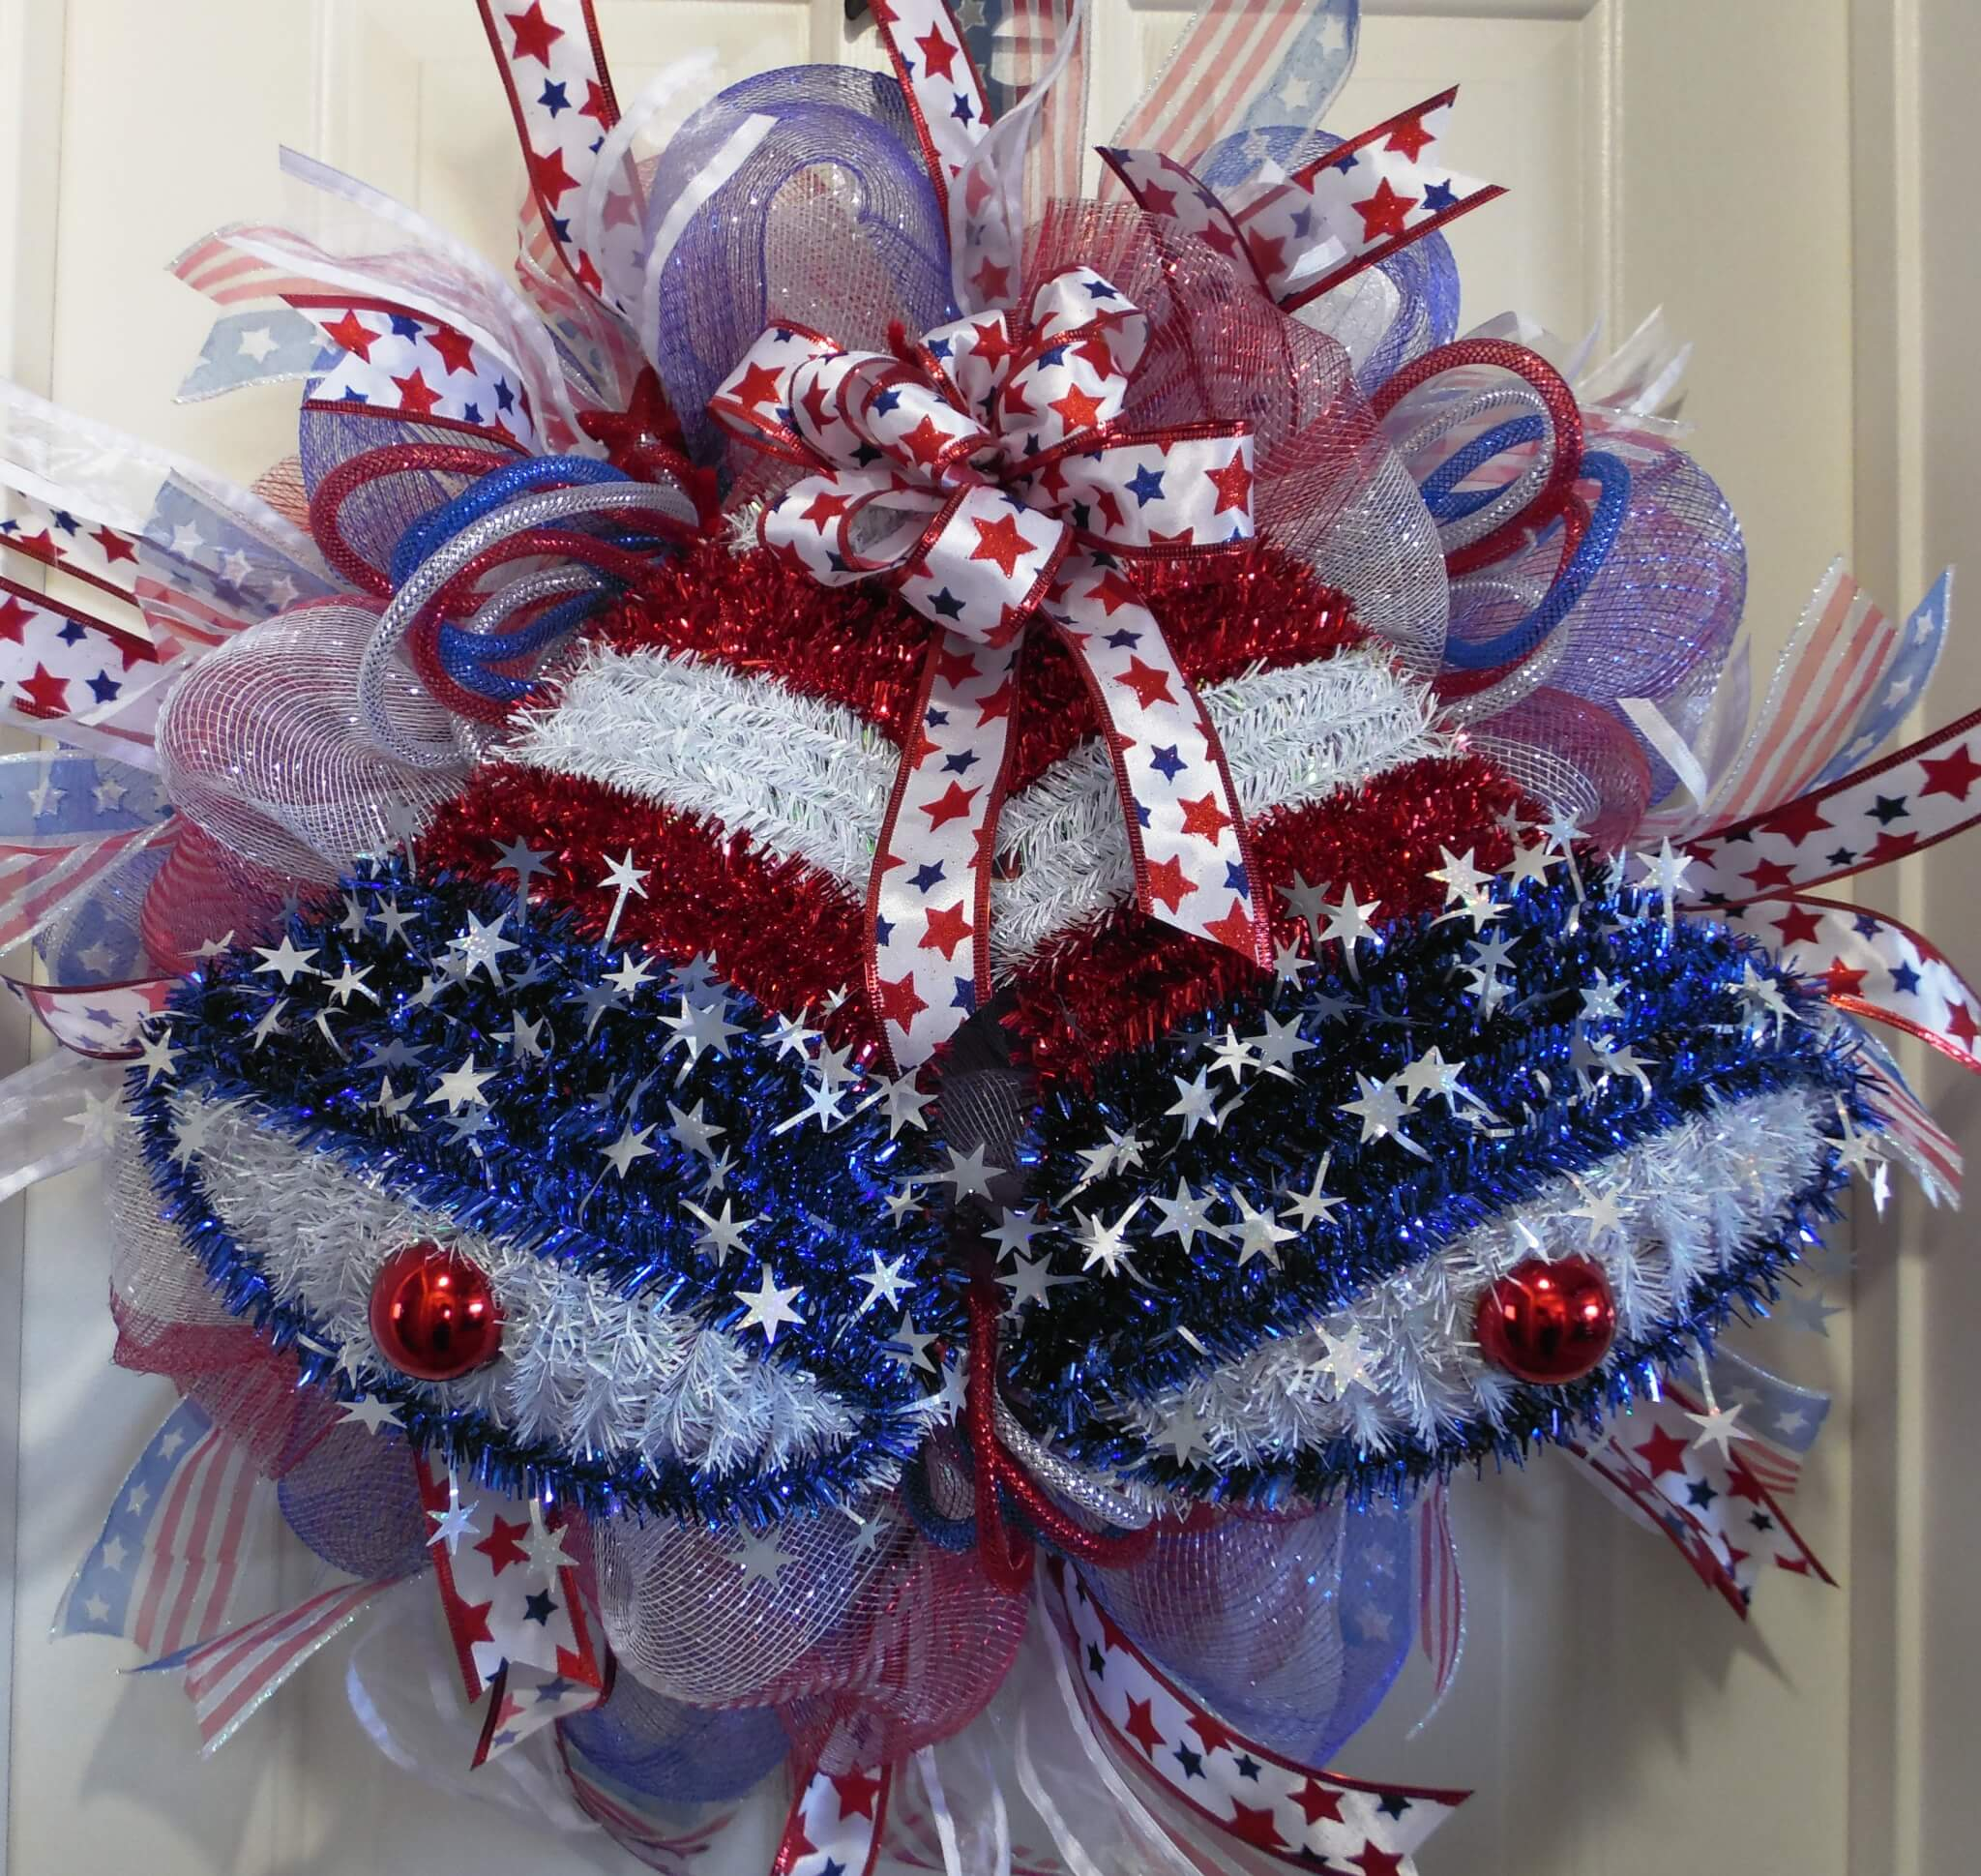 Red White And Blue Liberty Bell Wreath 4th Of July Wreath Wreaths Garland Centerpieces